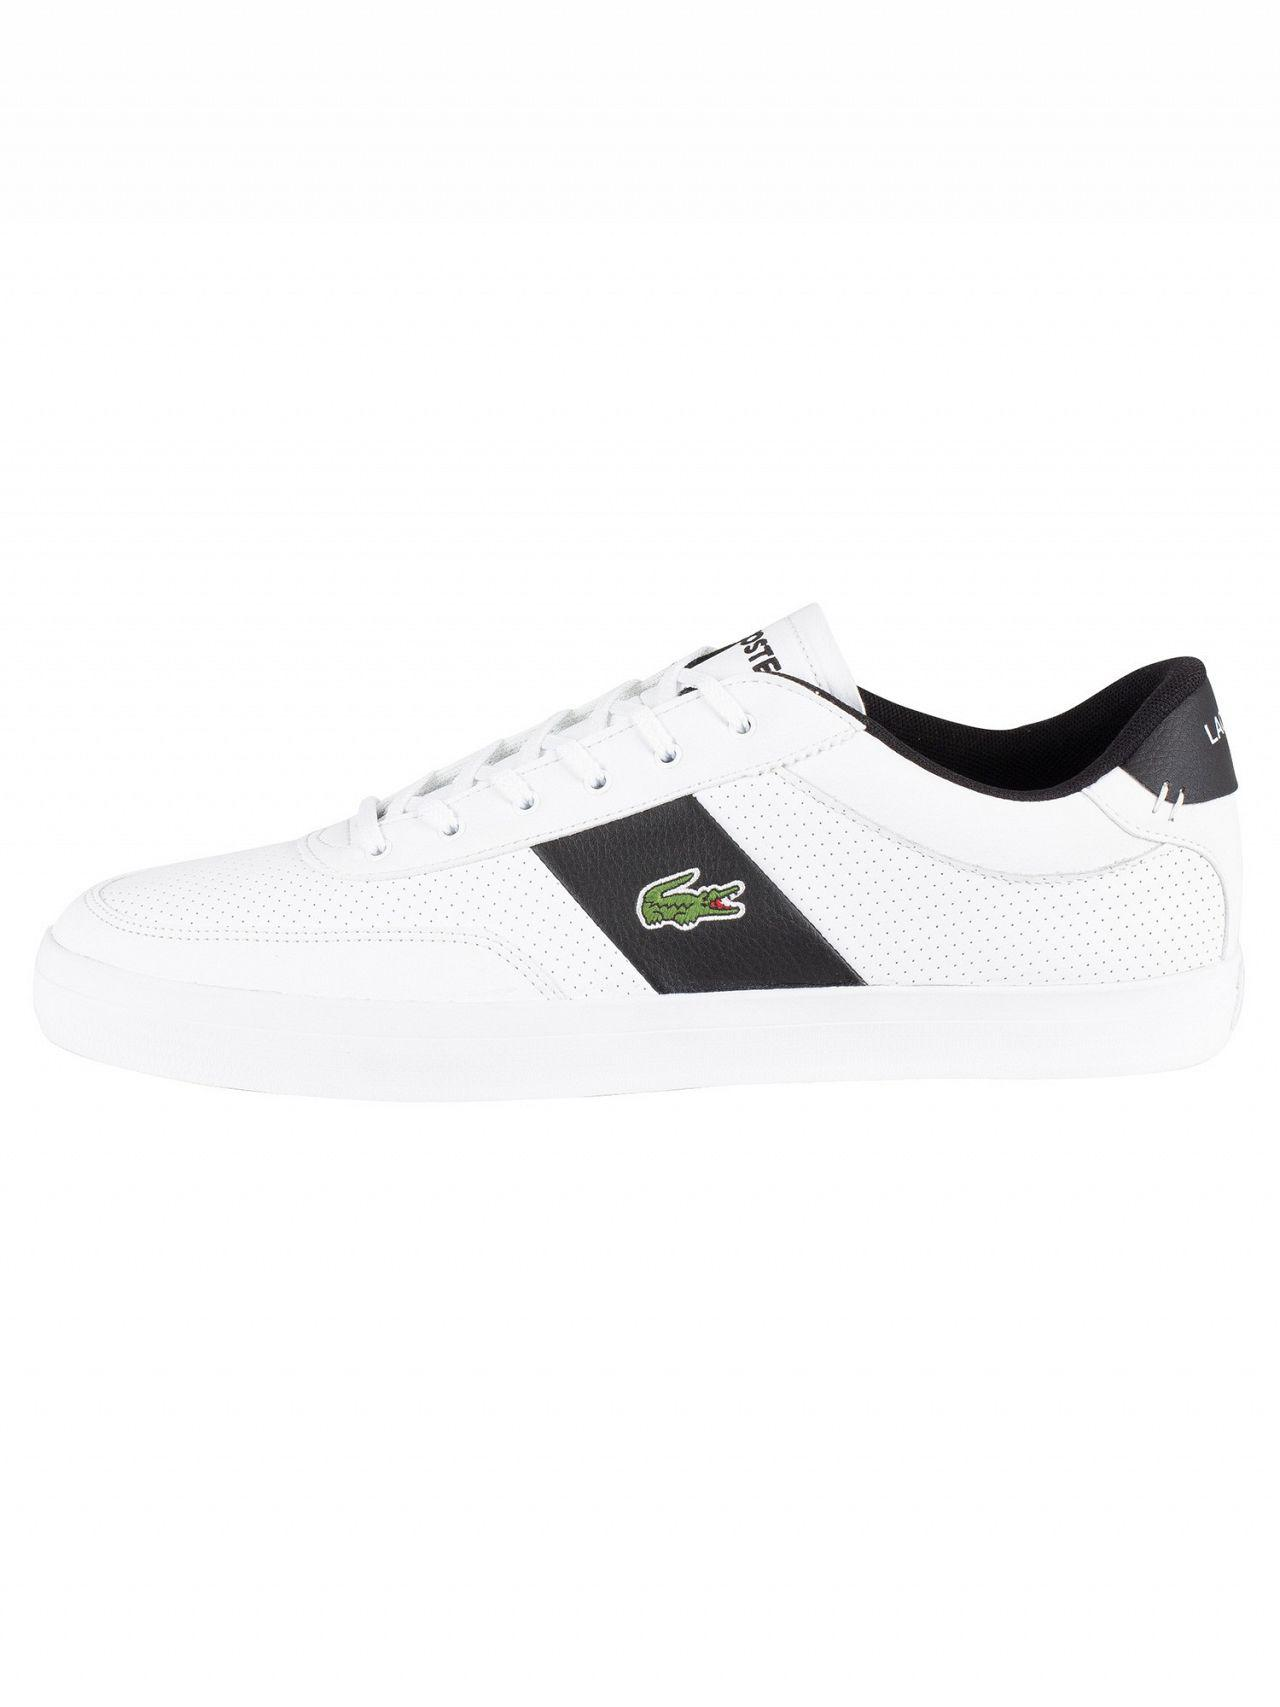 a5c60b9c9 Lacoste - White black Court-master 119 2 Leather Trainers for Men - Lyst.  View fullscreen